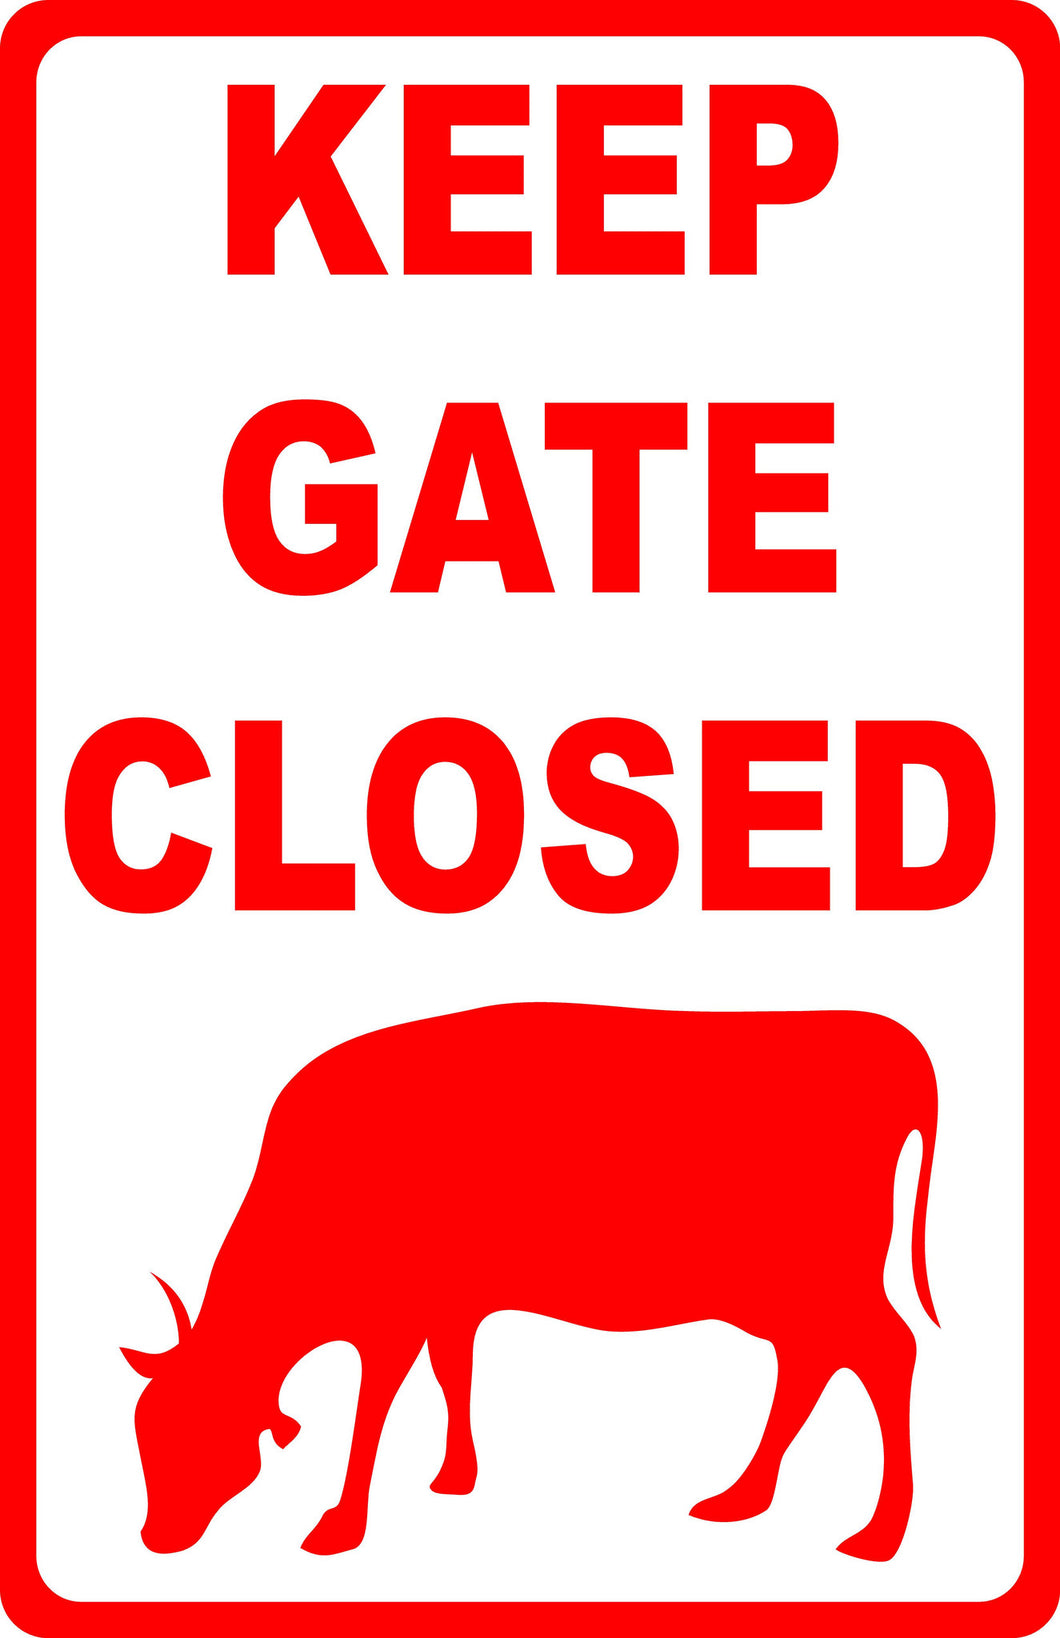 Keep Gate Closed with Cow Image - Signs & Decals by SalaGraphics